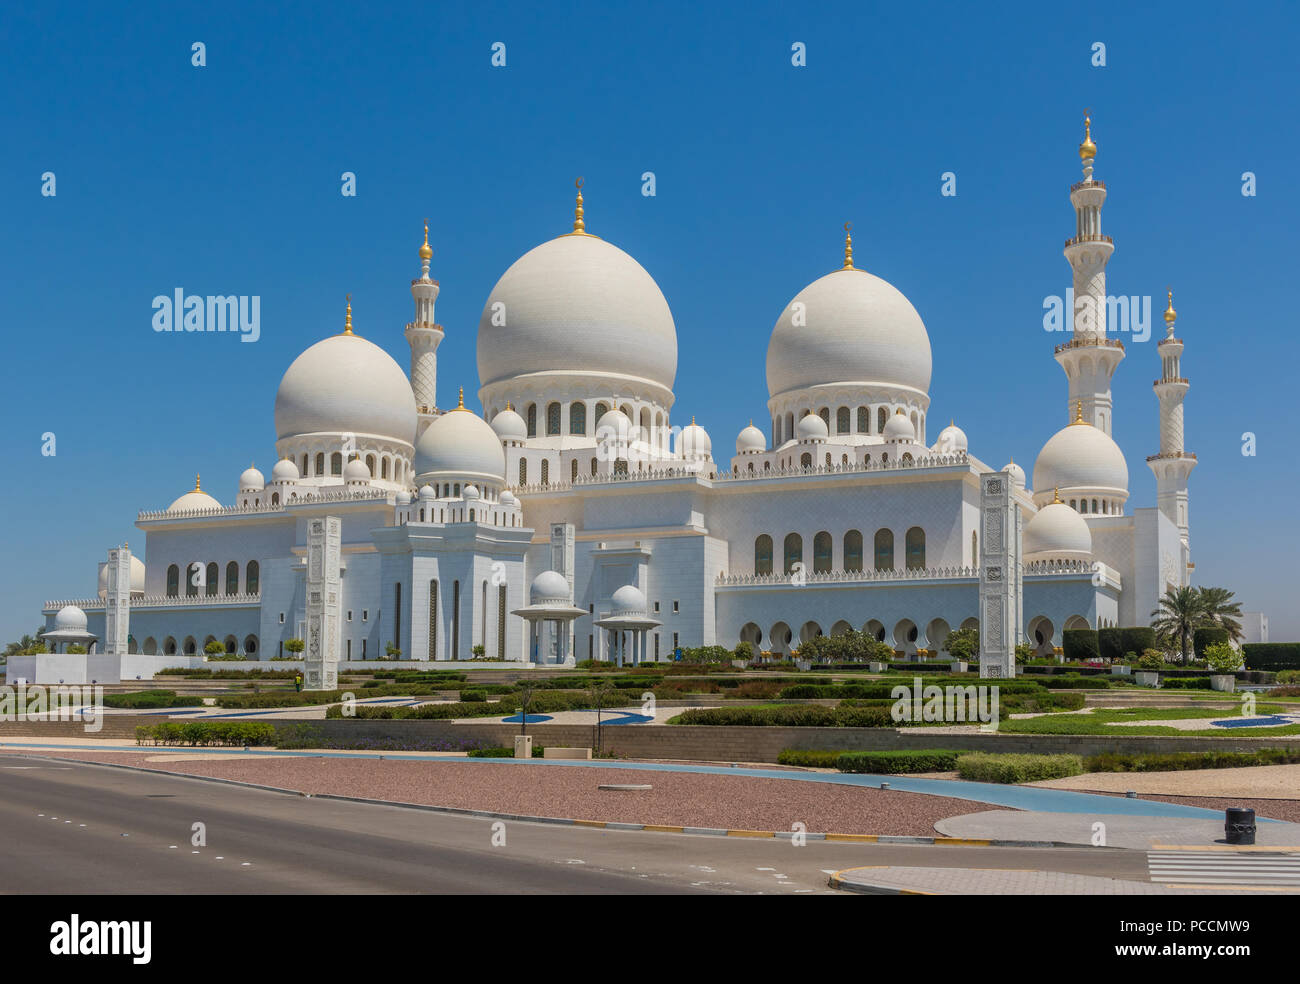 Abu Dhabi - the Sheikh Zayed Mosque is the most recognizable landmark in Abu Dabhi. Here in particular a glimpse of its wonderful architecture - Stock Image